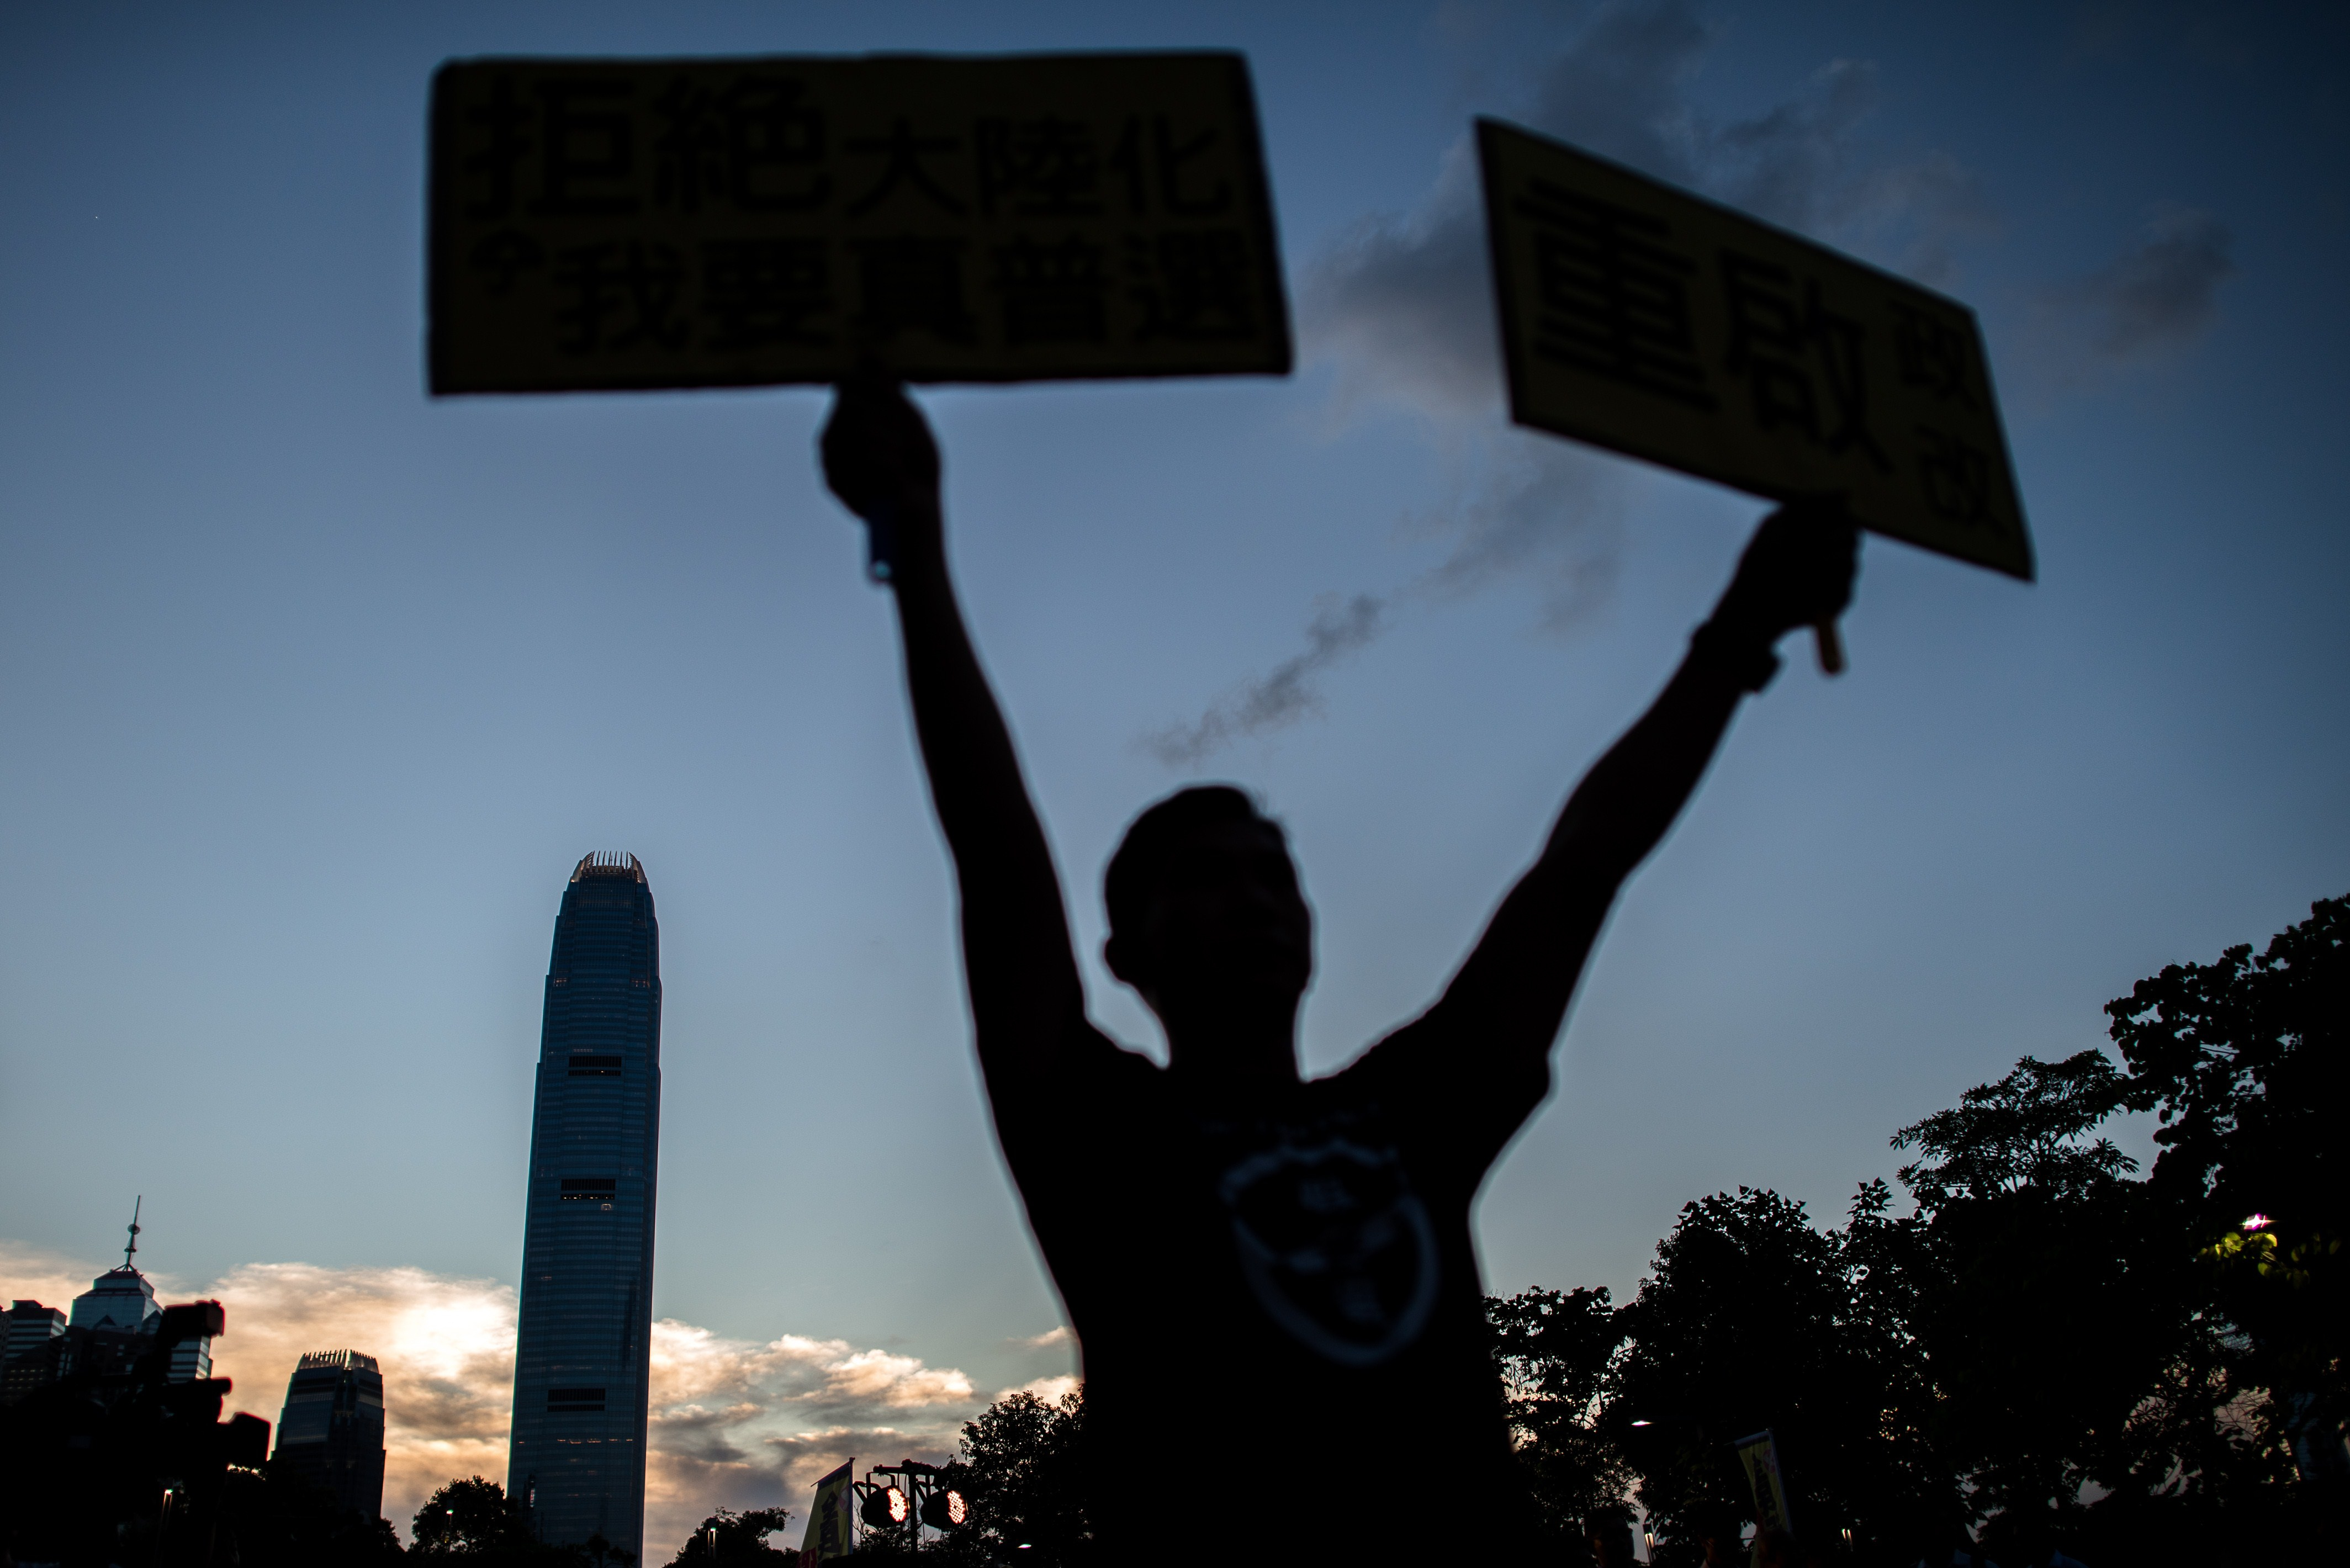 A pro-democracy campaigner holds placard during sunset outside the city's legislature in Hong Kong on June 15, 2015, ahead of a key vote on the government's controversial political reform package.